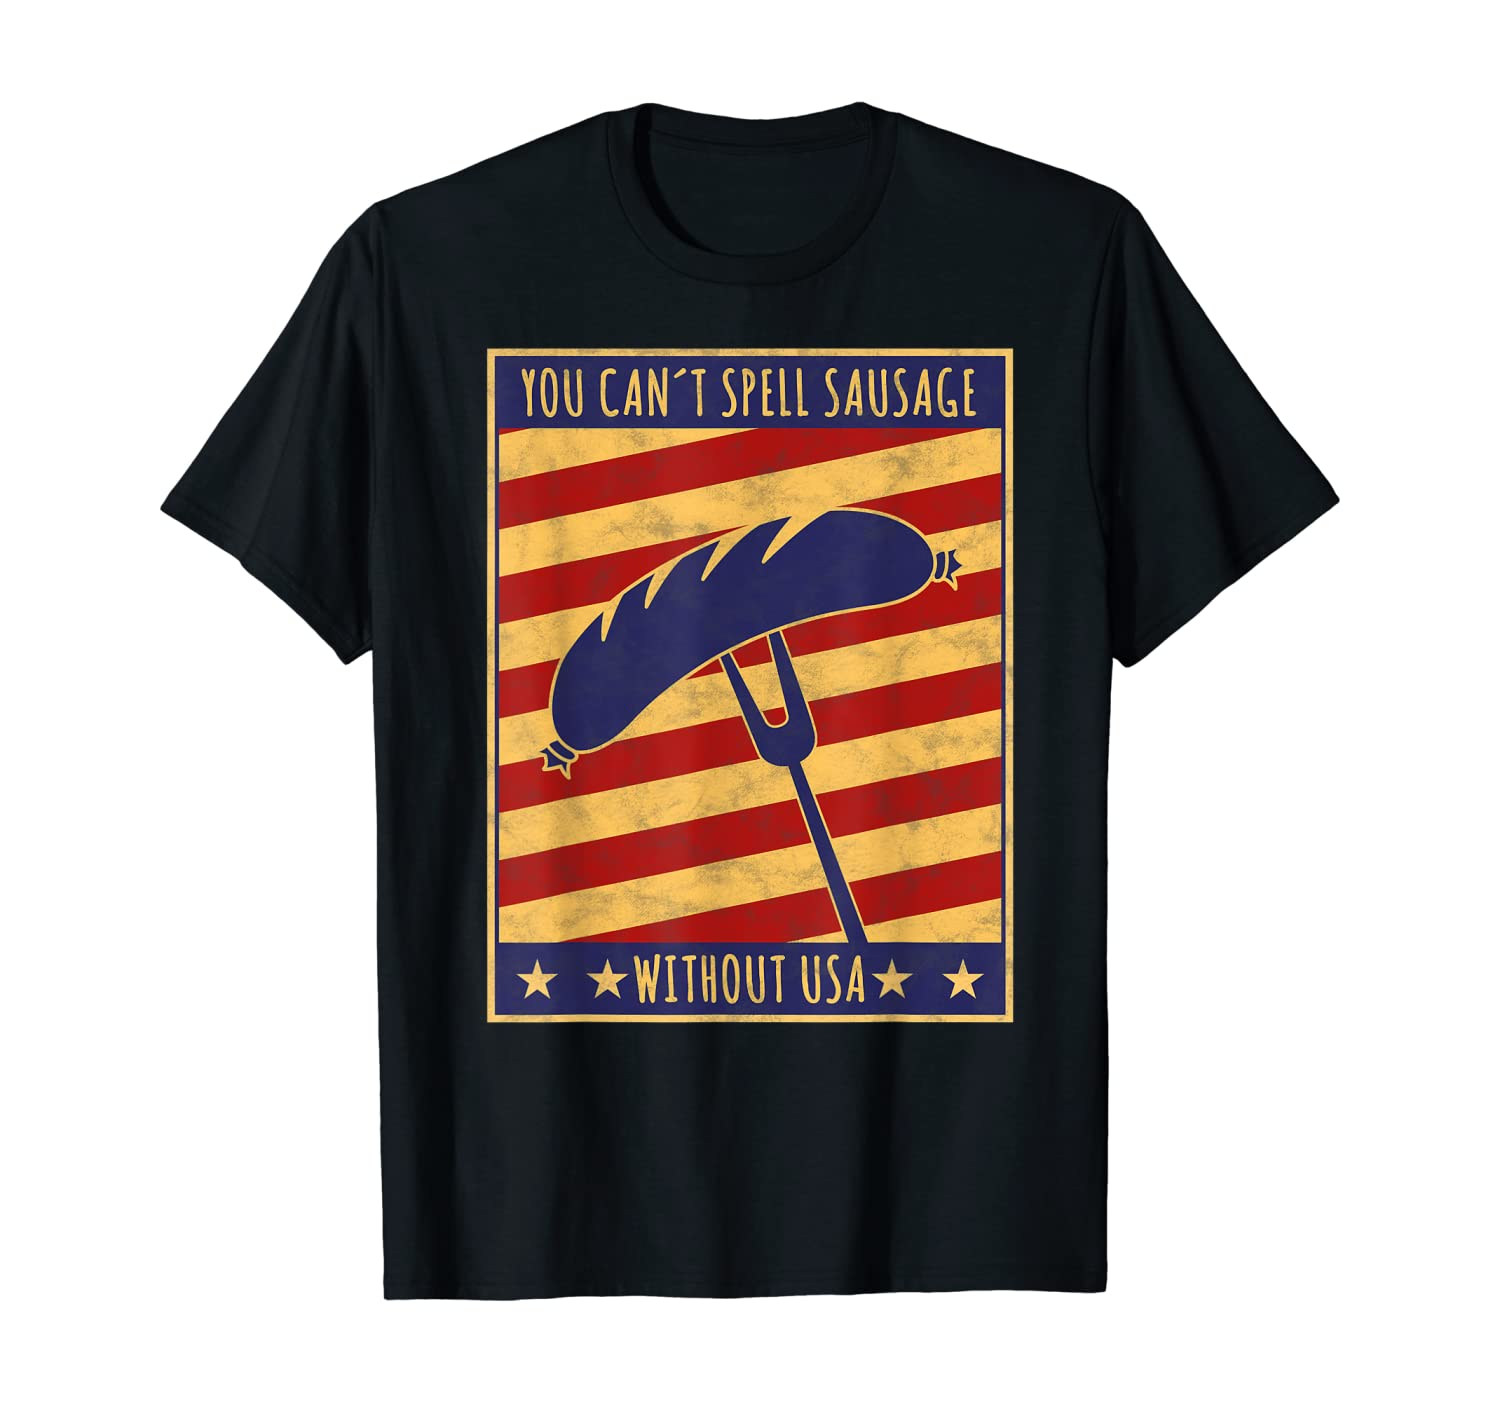 Retro Poster You Can't Spell Sausage Without USA T-shirt